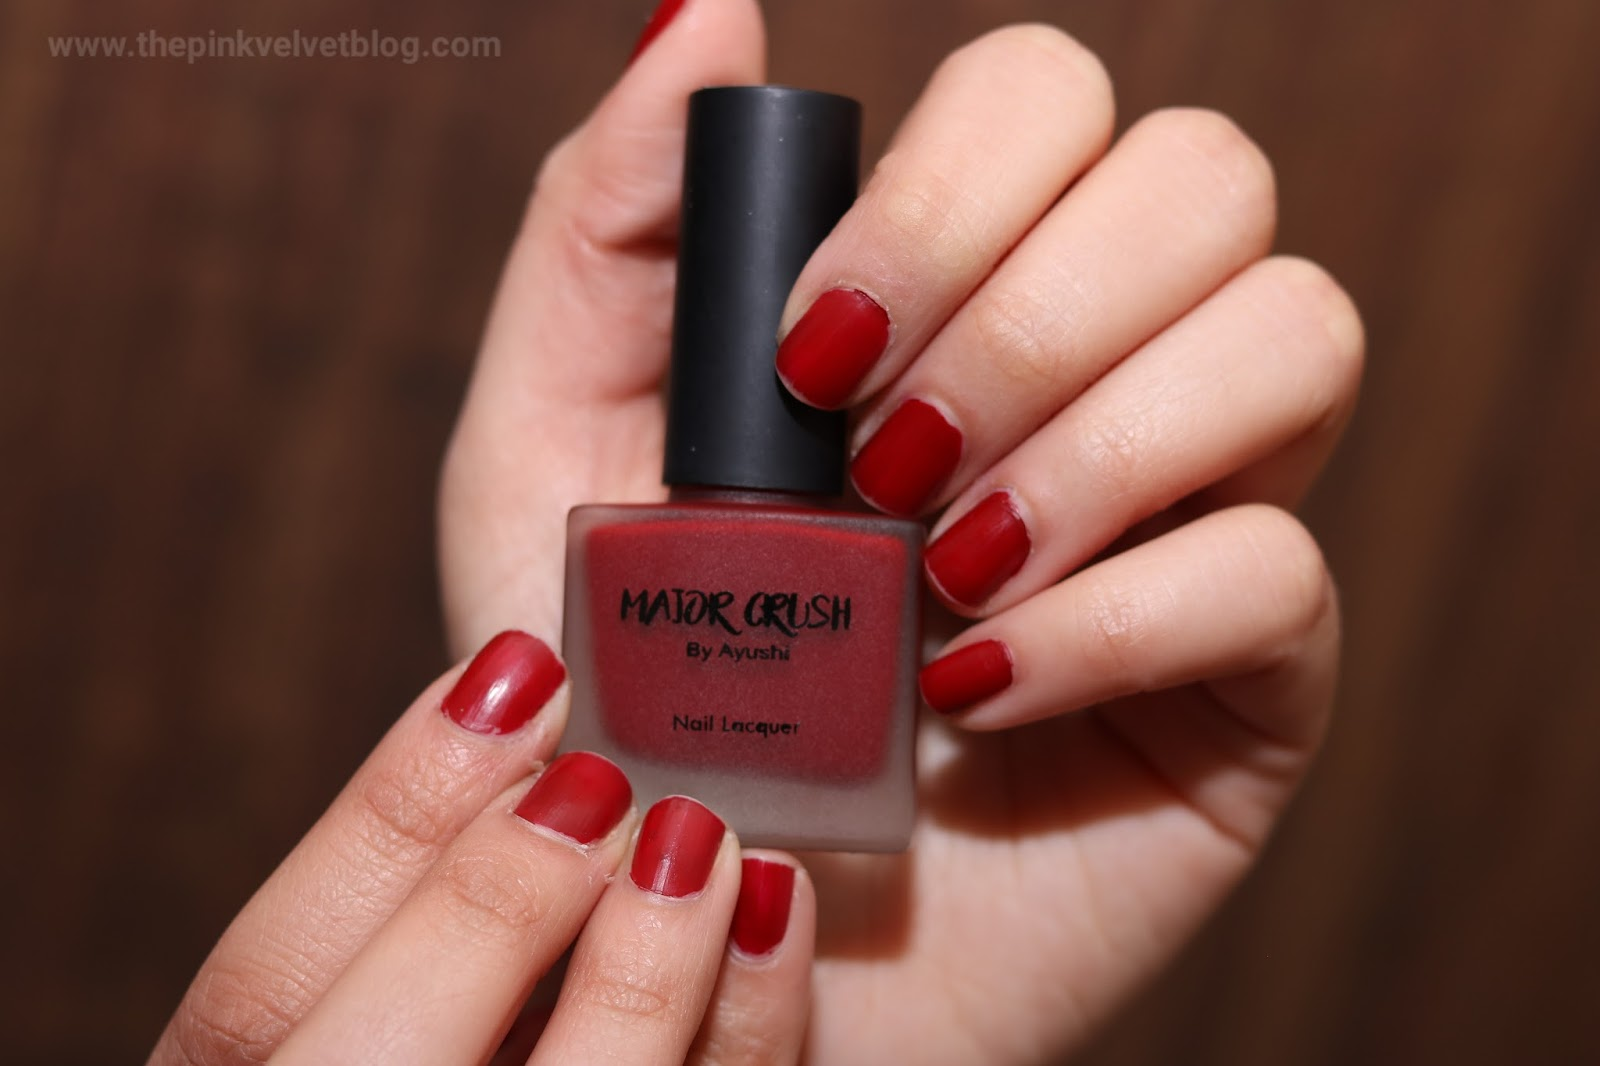 Major Crush Pure Matte Nail Paint by Ayushi - Shade 103 February Fab Bag